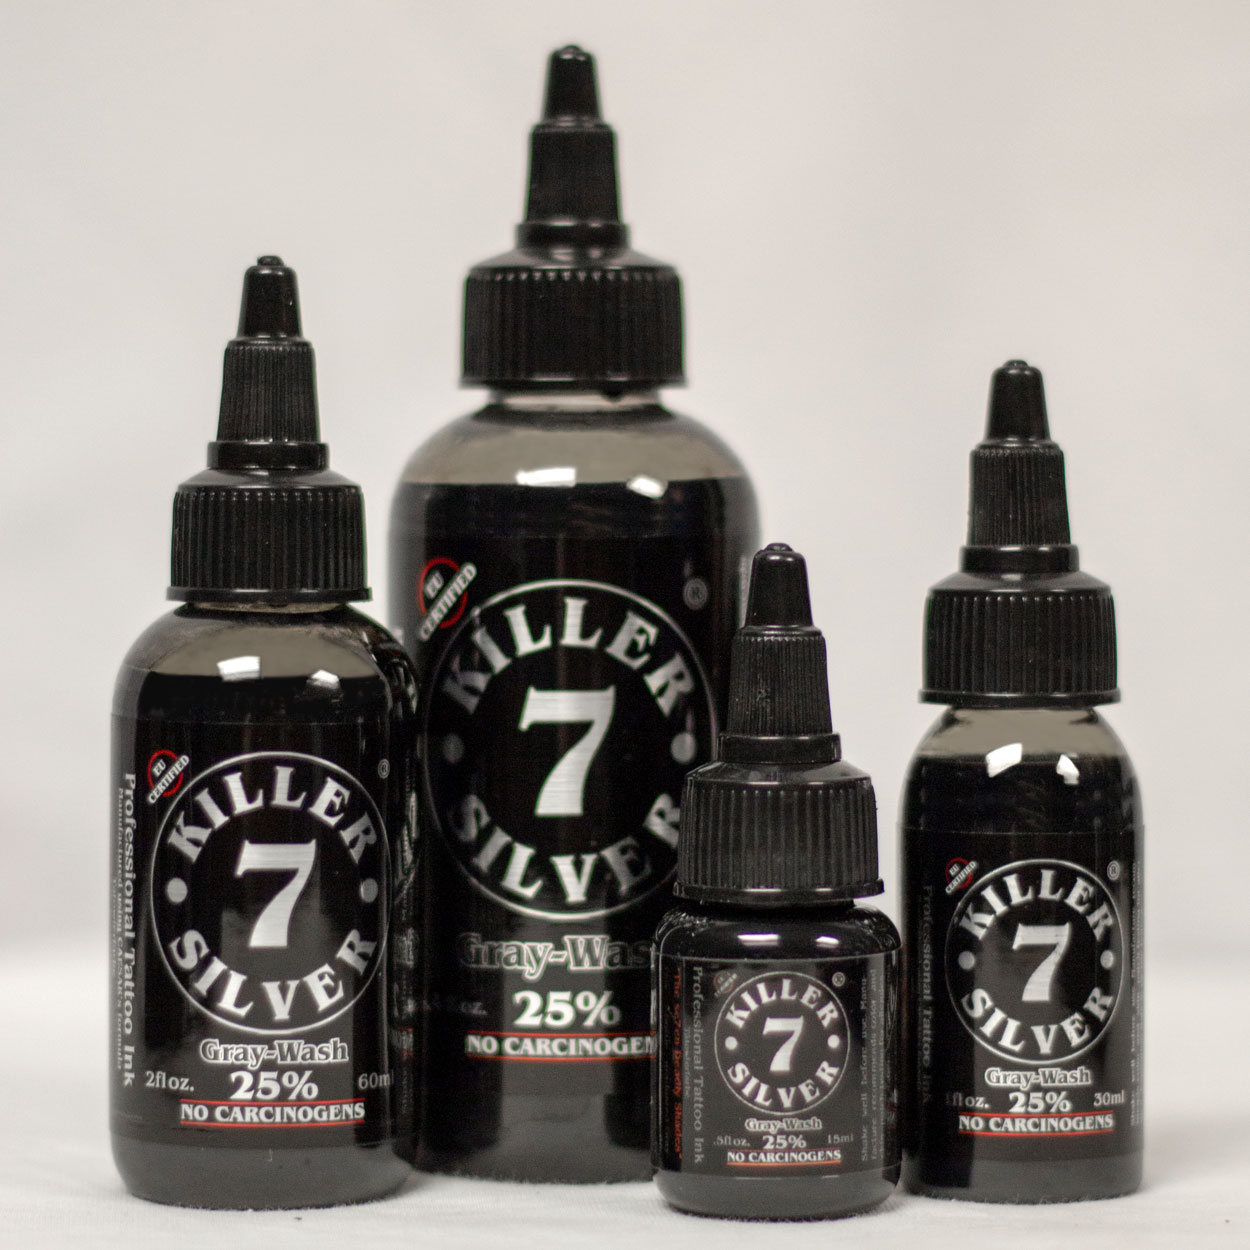 Killer Silver-Gray-Wash 25%-Tattoo Ink-4 sizes-Silver Darkness